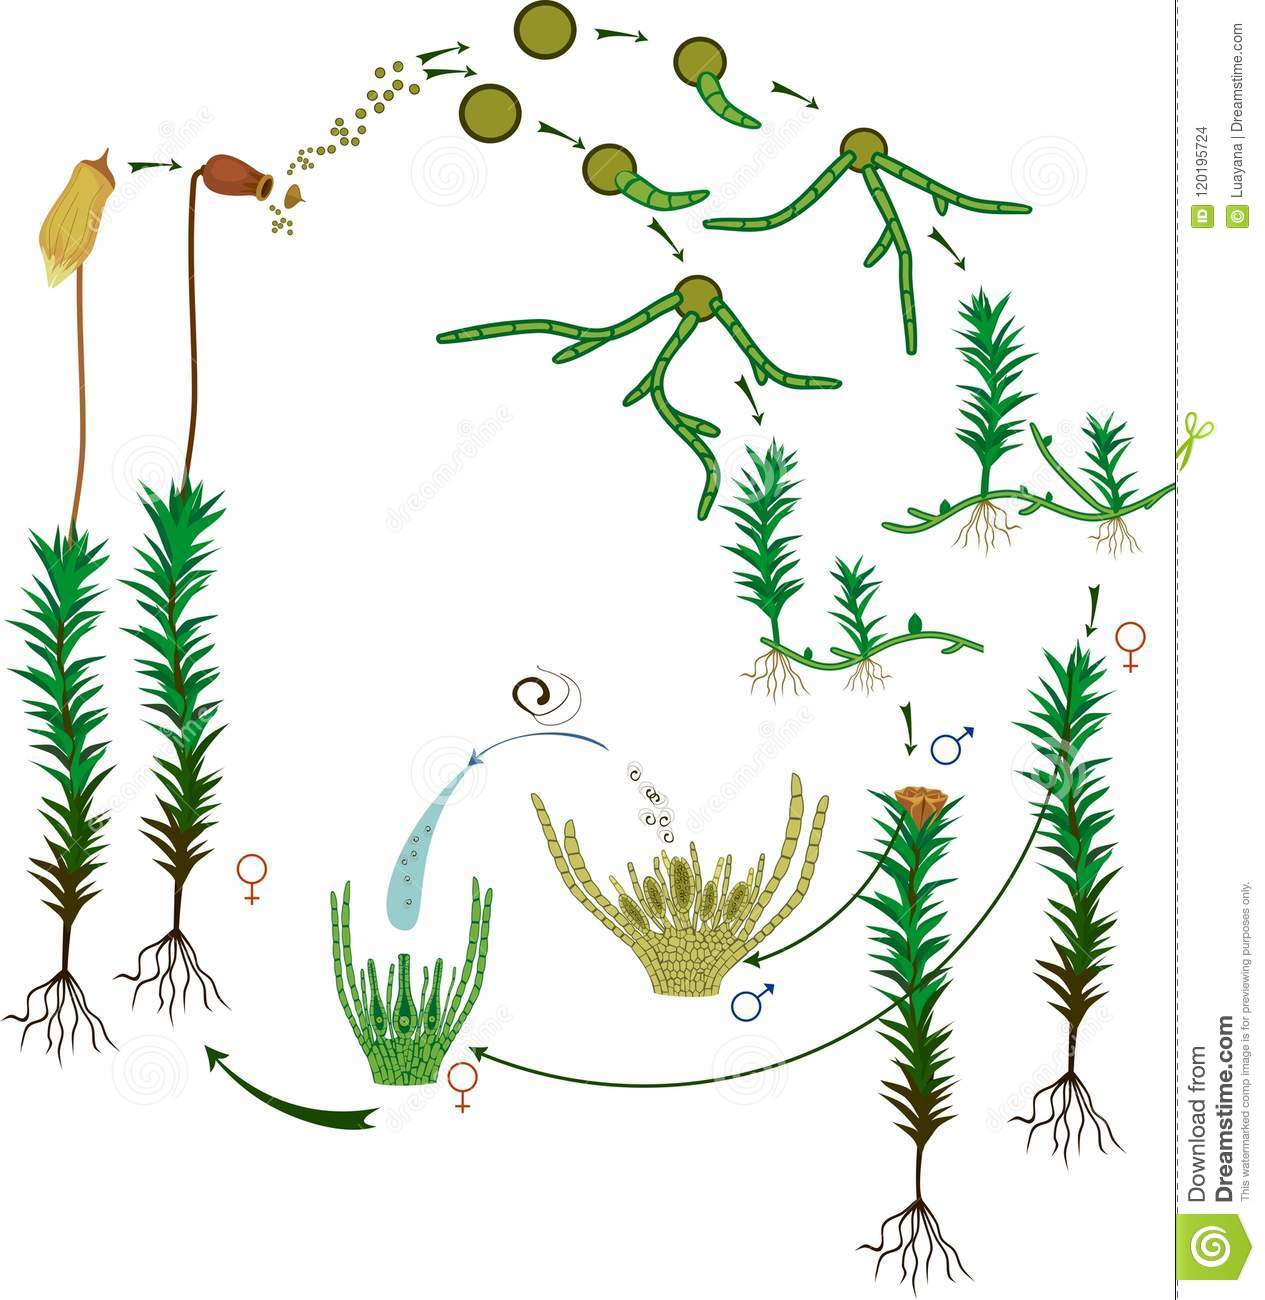 hight resolution of diagram of life cycle of common haircap moss polytrichum commune